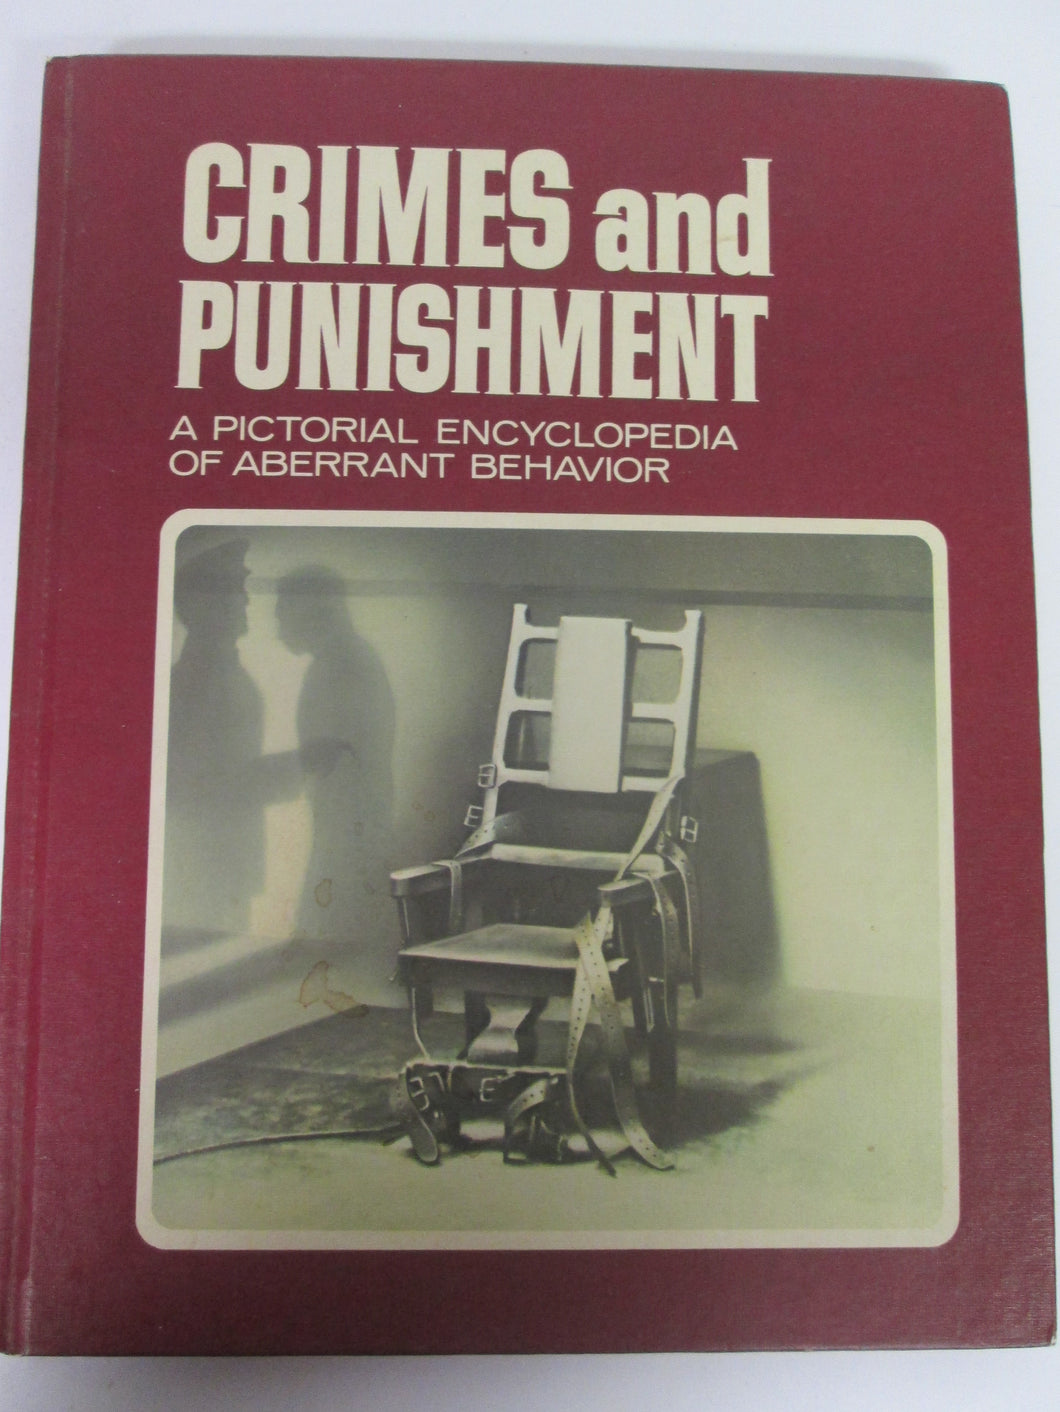 Crimes and Punishment A Pictorial Encyclopedia of Aberrant Behavior Vol 1 HC 1973